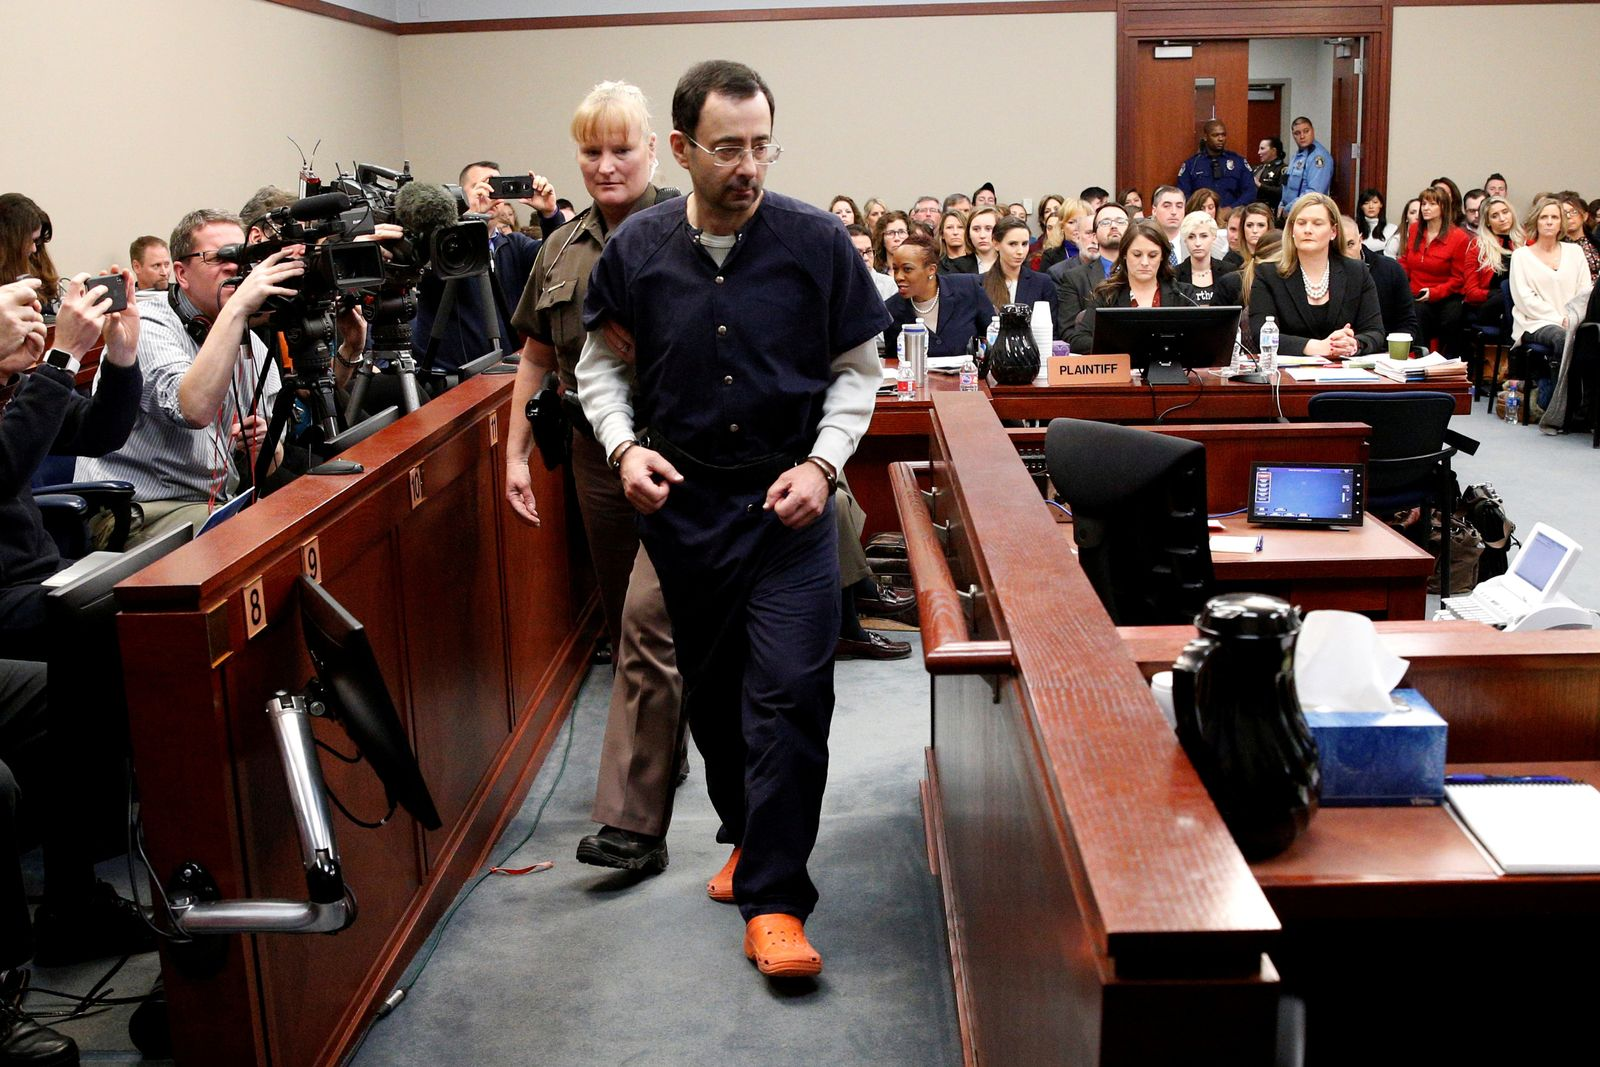 FILE PHOTO: Larry Nassar, a former team USA Gymnastics doctor who pleaded guilty in November 2017 to sexual assault charges, is escorted into the courtroom during his sentencing hearing in Lansing